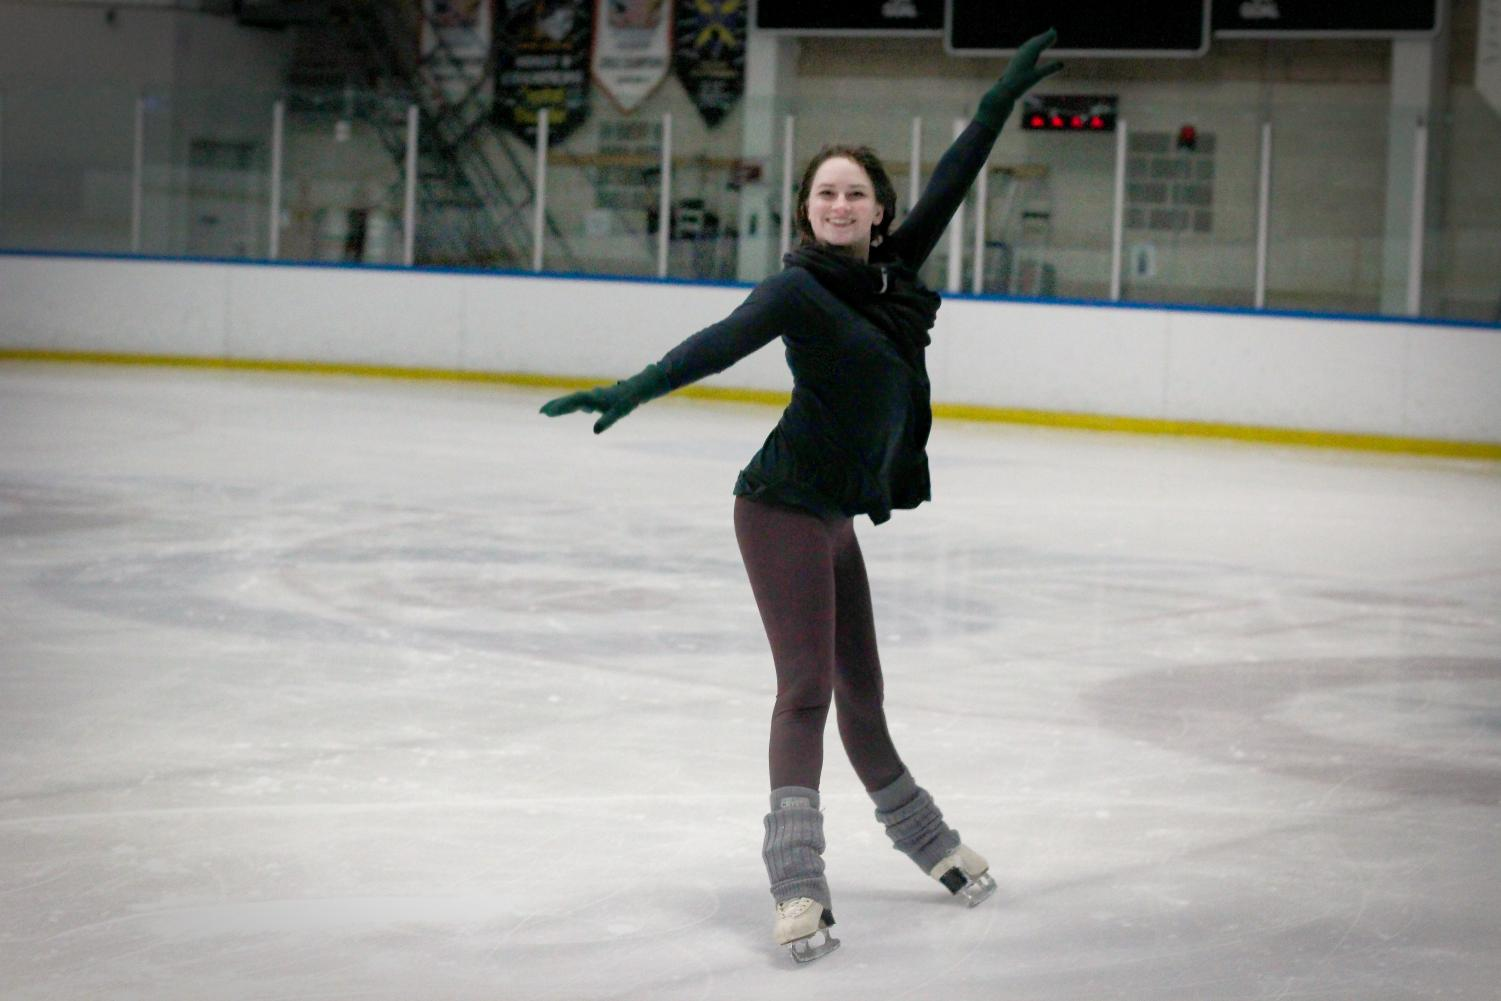 Sac State graduate student Samantha Mapes skates at Skatetown Ice Arena in Roseville. Mapes, who was in Disney on Ice for three years, shows off one of her favorite moves.